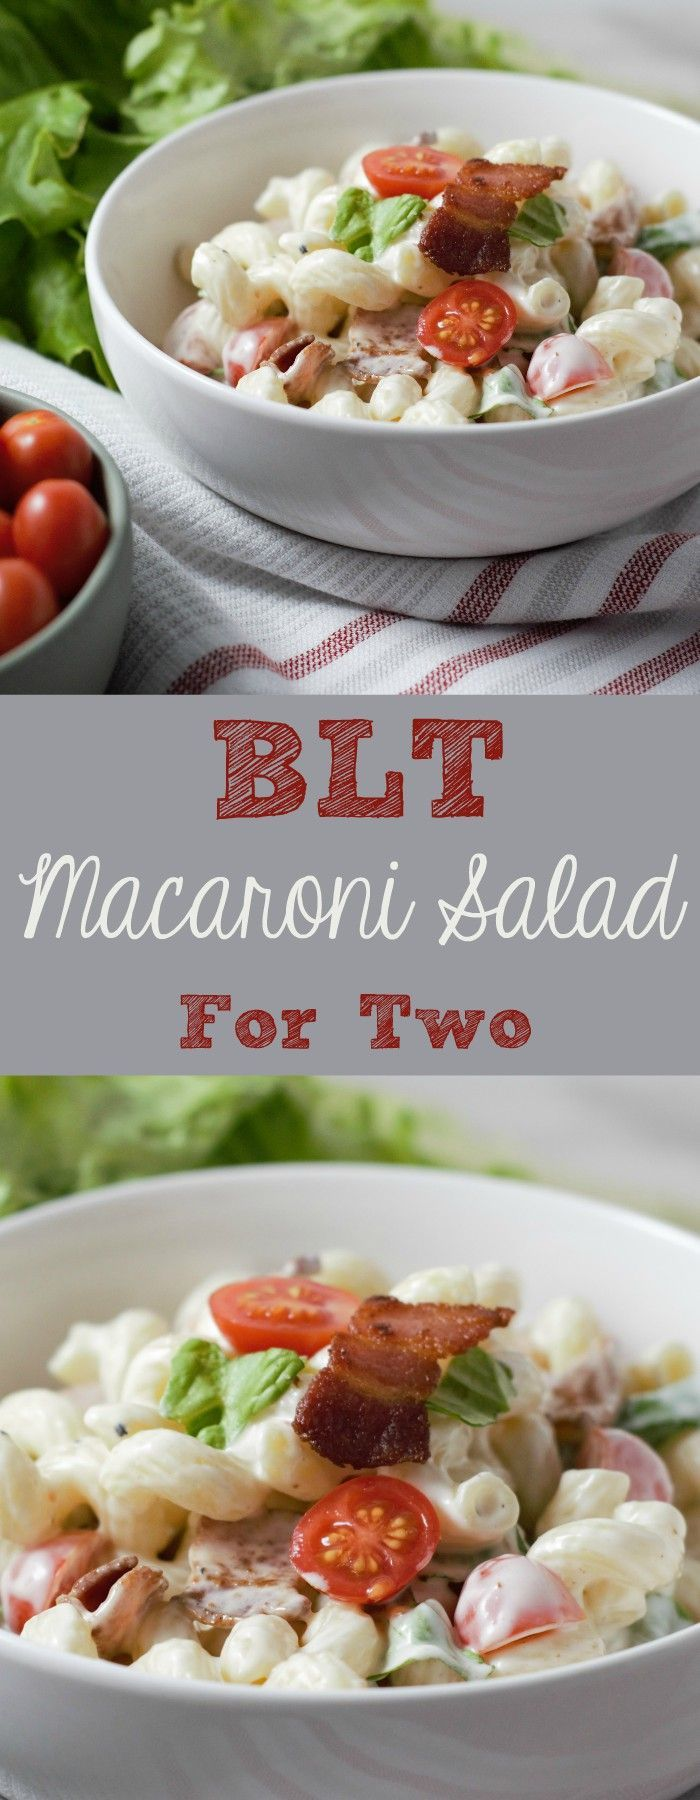 In this easy and tasty BLT Macaroni Salad bacon, lettuce and tomato are mixed with a creamy delicious dressing. This small batch recipe is a great side dish and serves two or three people. You can use any pasta shape you prefer and this gorgeous cavatappi pasta is my favorite. #BLT #BLTMacaroniSalad #MacaroniSalad #pasta #SideDish #SideDishForTwo #RecipesForTwo #SmallBatch